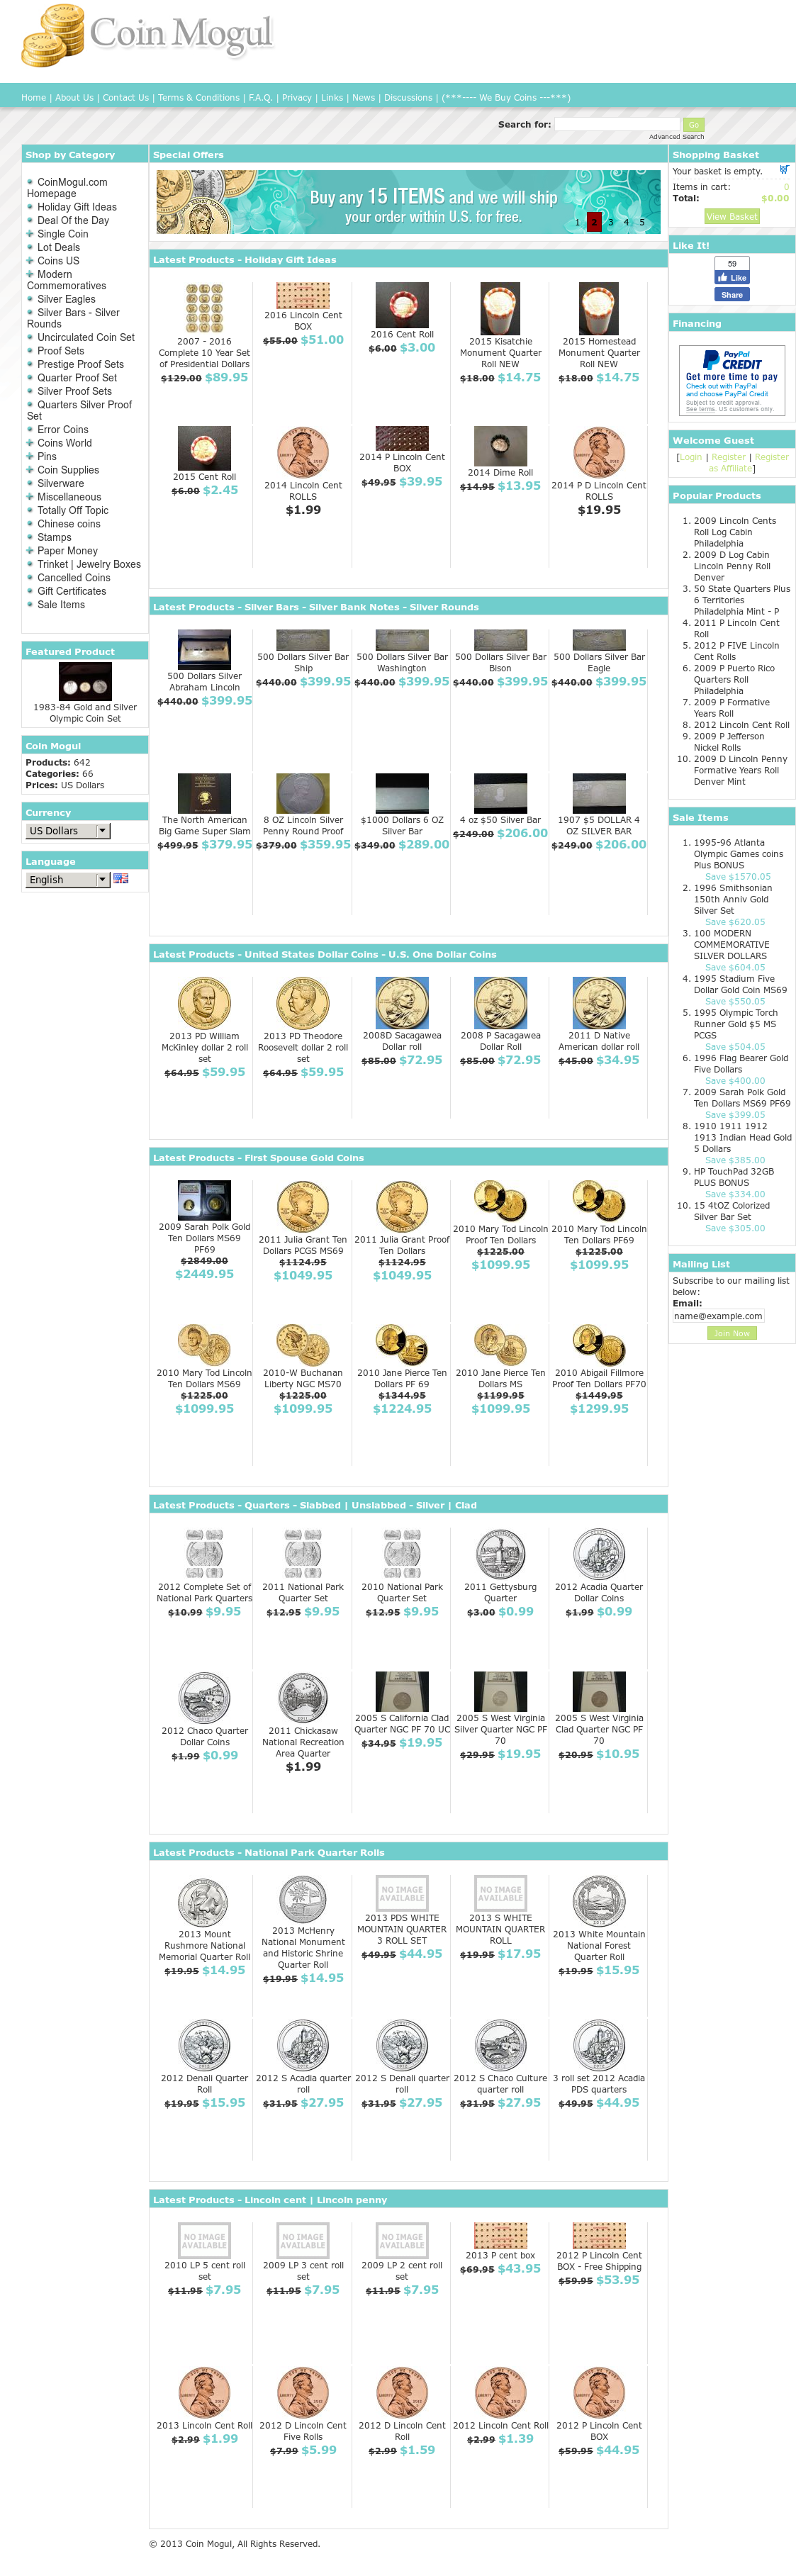 Coin Mogul Competitors, Revenue and Employees - Owler